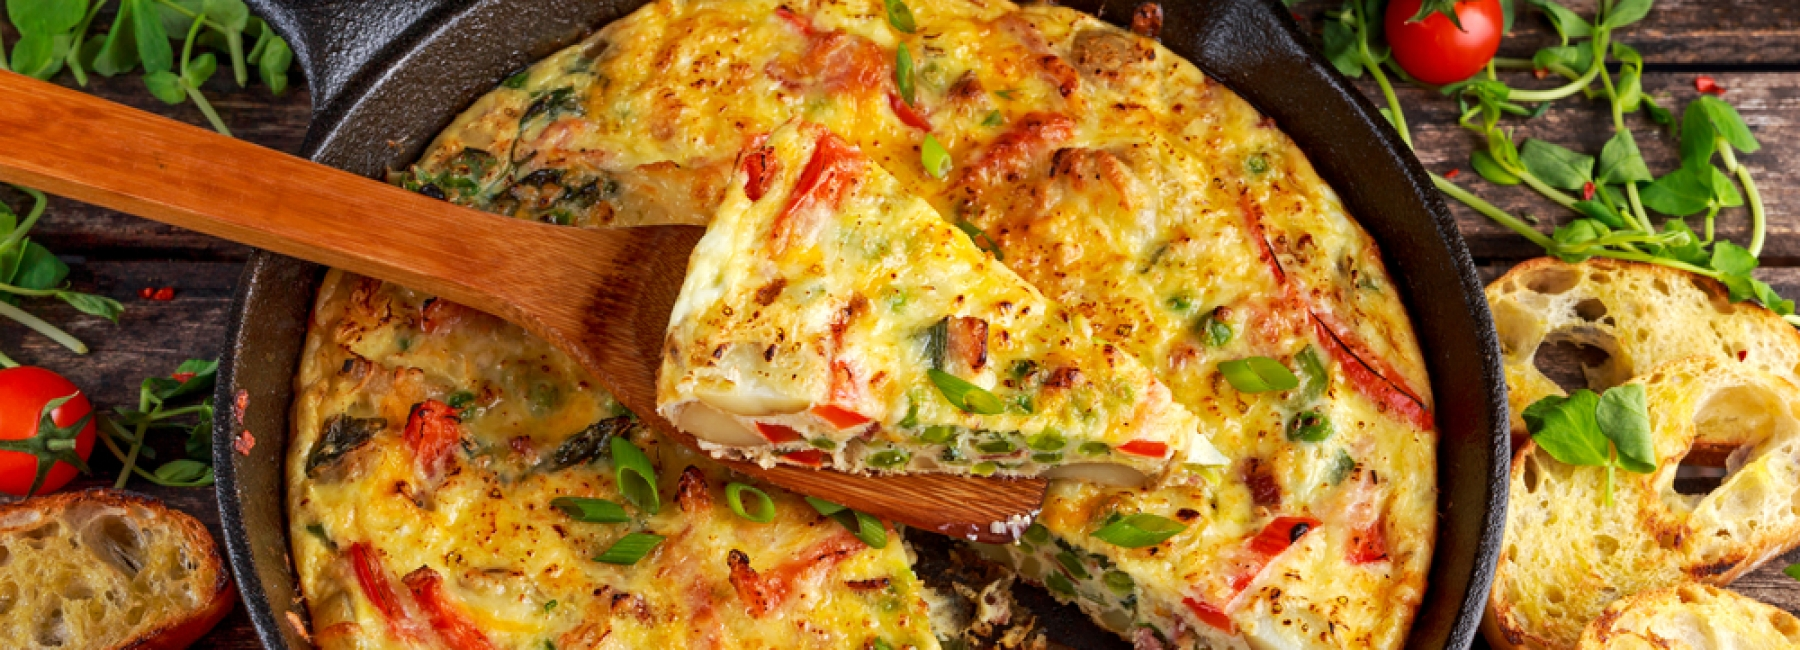 Omelet with yamboon